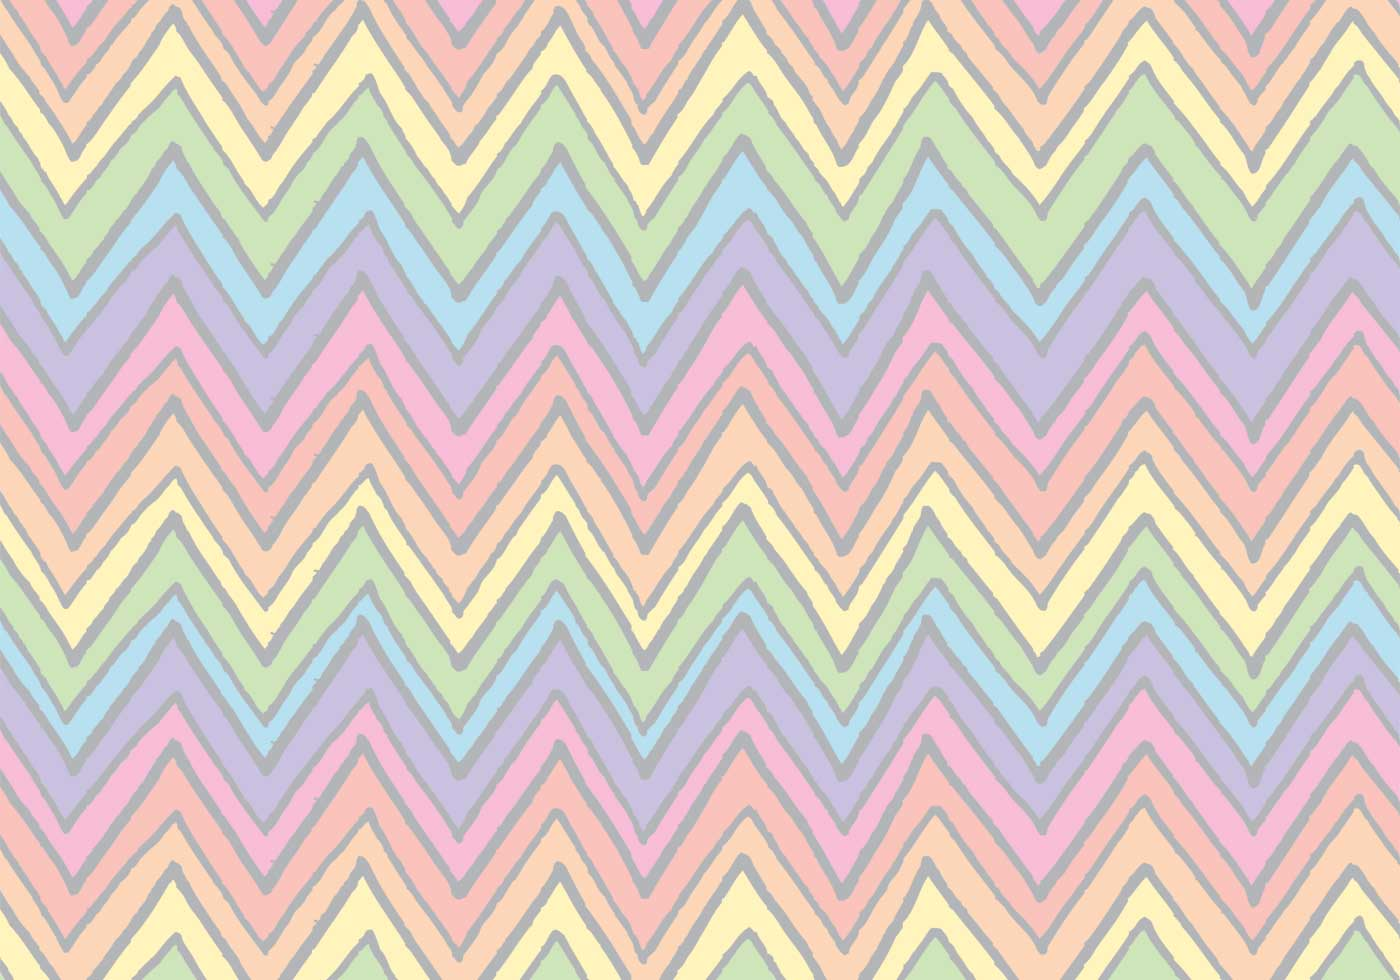 rainbow chevron background - photo #15